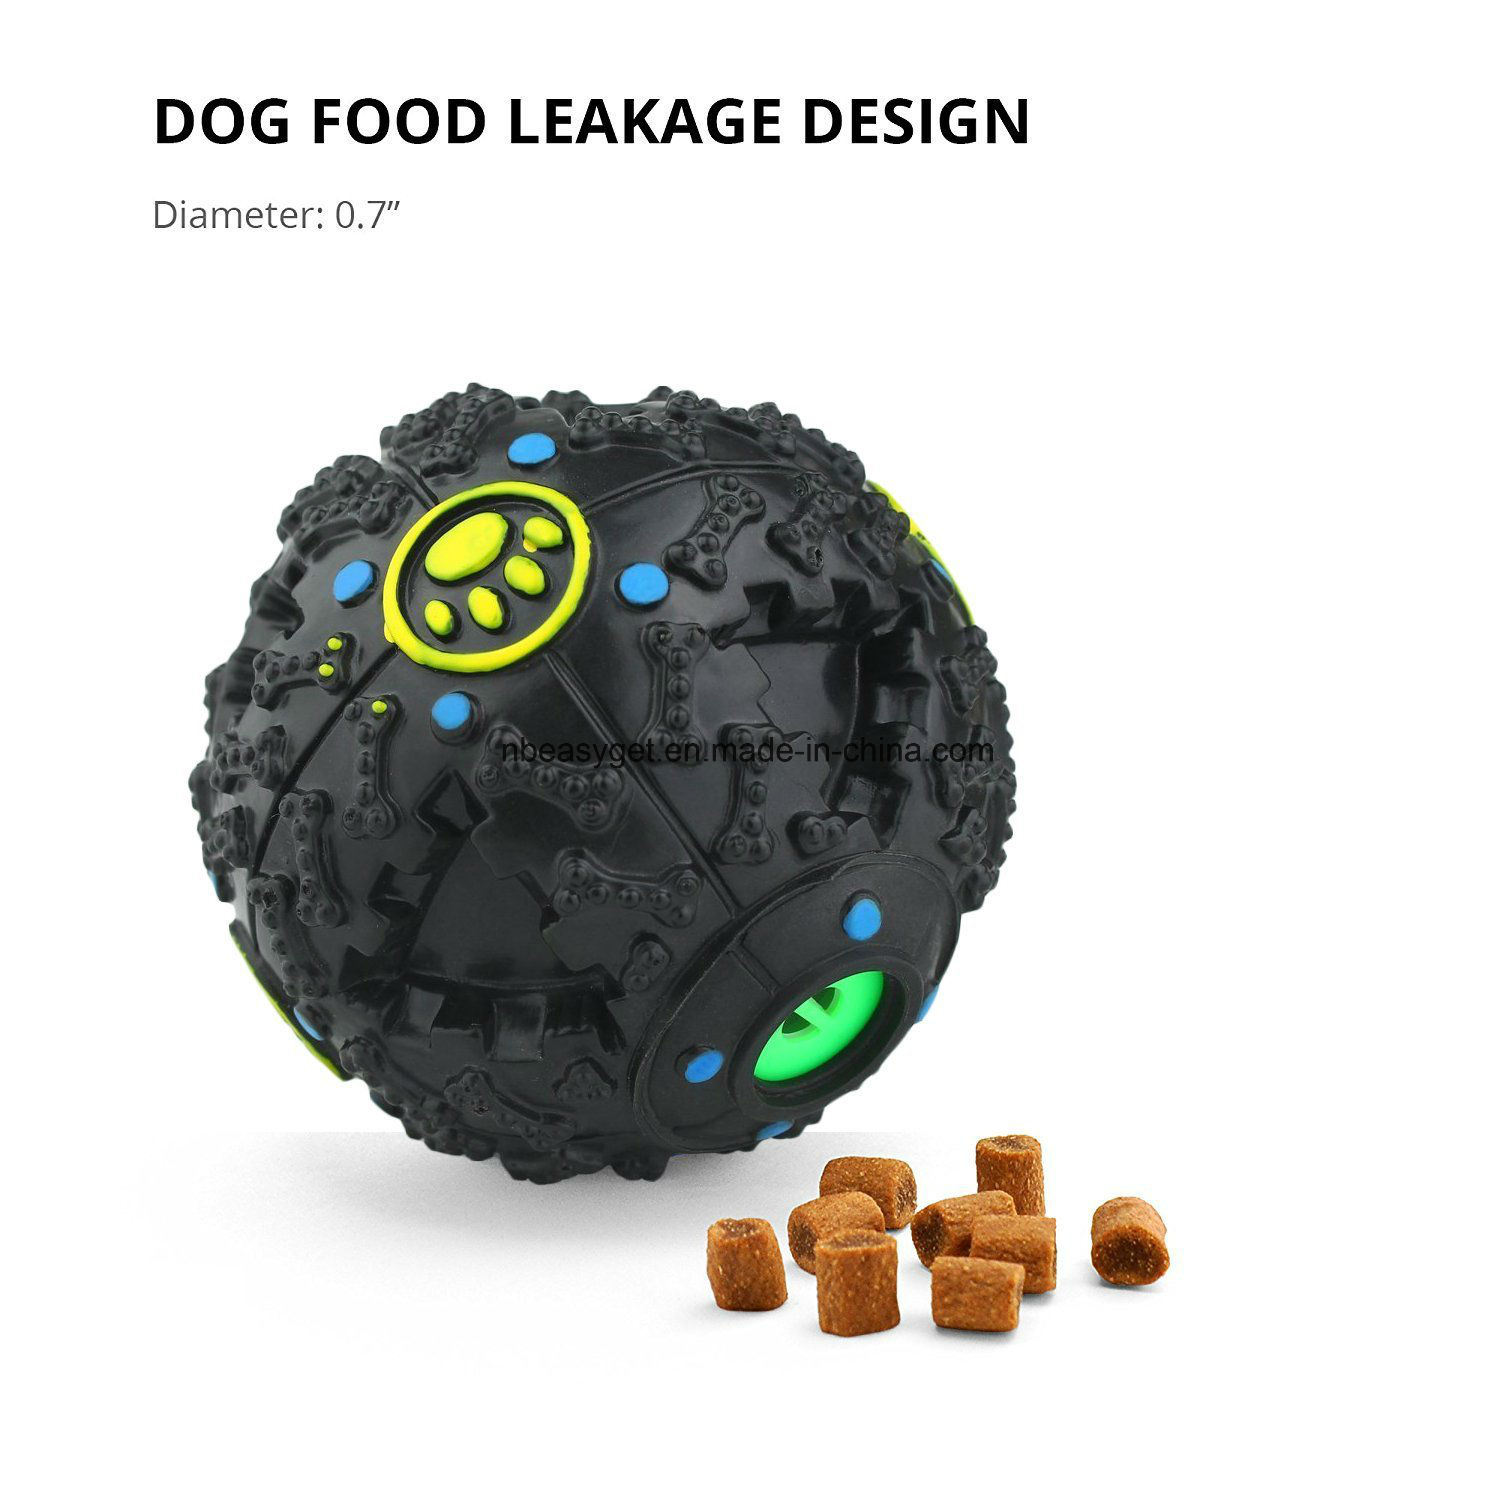 Dog Toys Ball Iq Treat Ball Dog Food Dispenser by Furryfido, for Small/Middles Size (under 30lbs) Dogs Teeth Cleaning, Playing and Chewing pictures & photos